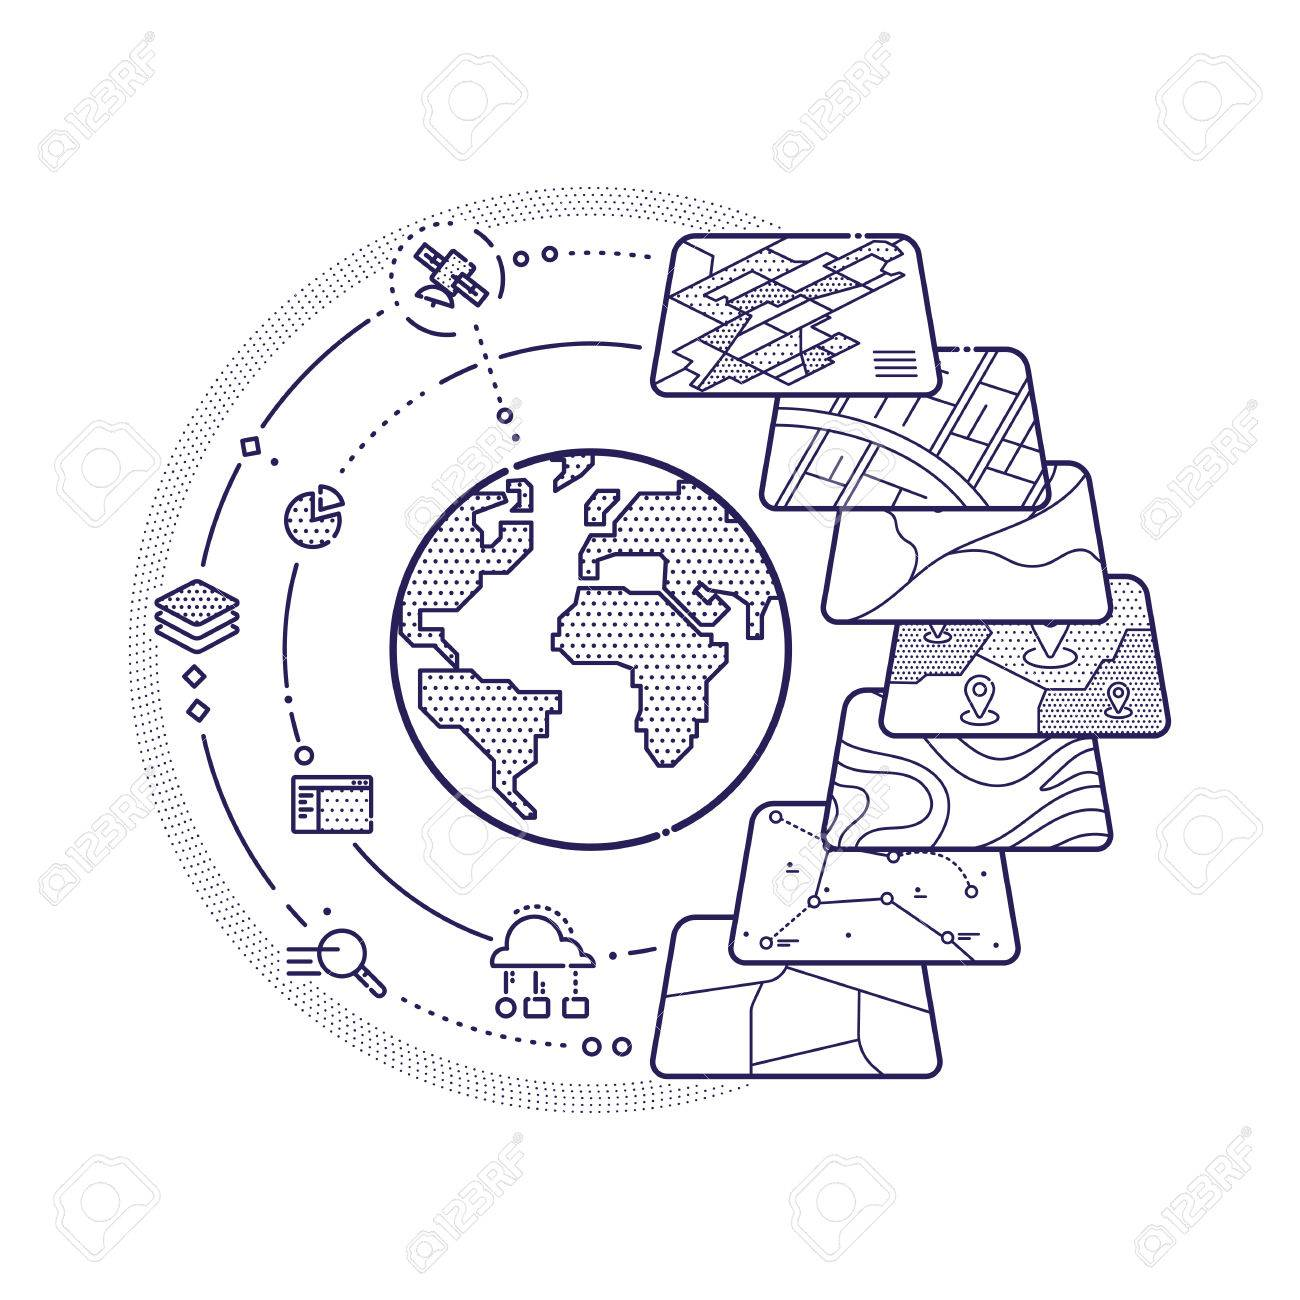 Illustration of GIS Spatial Data Layers Concept for Business